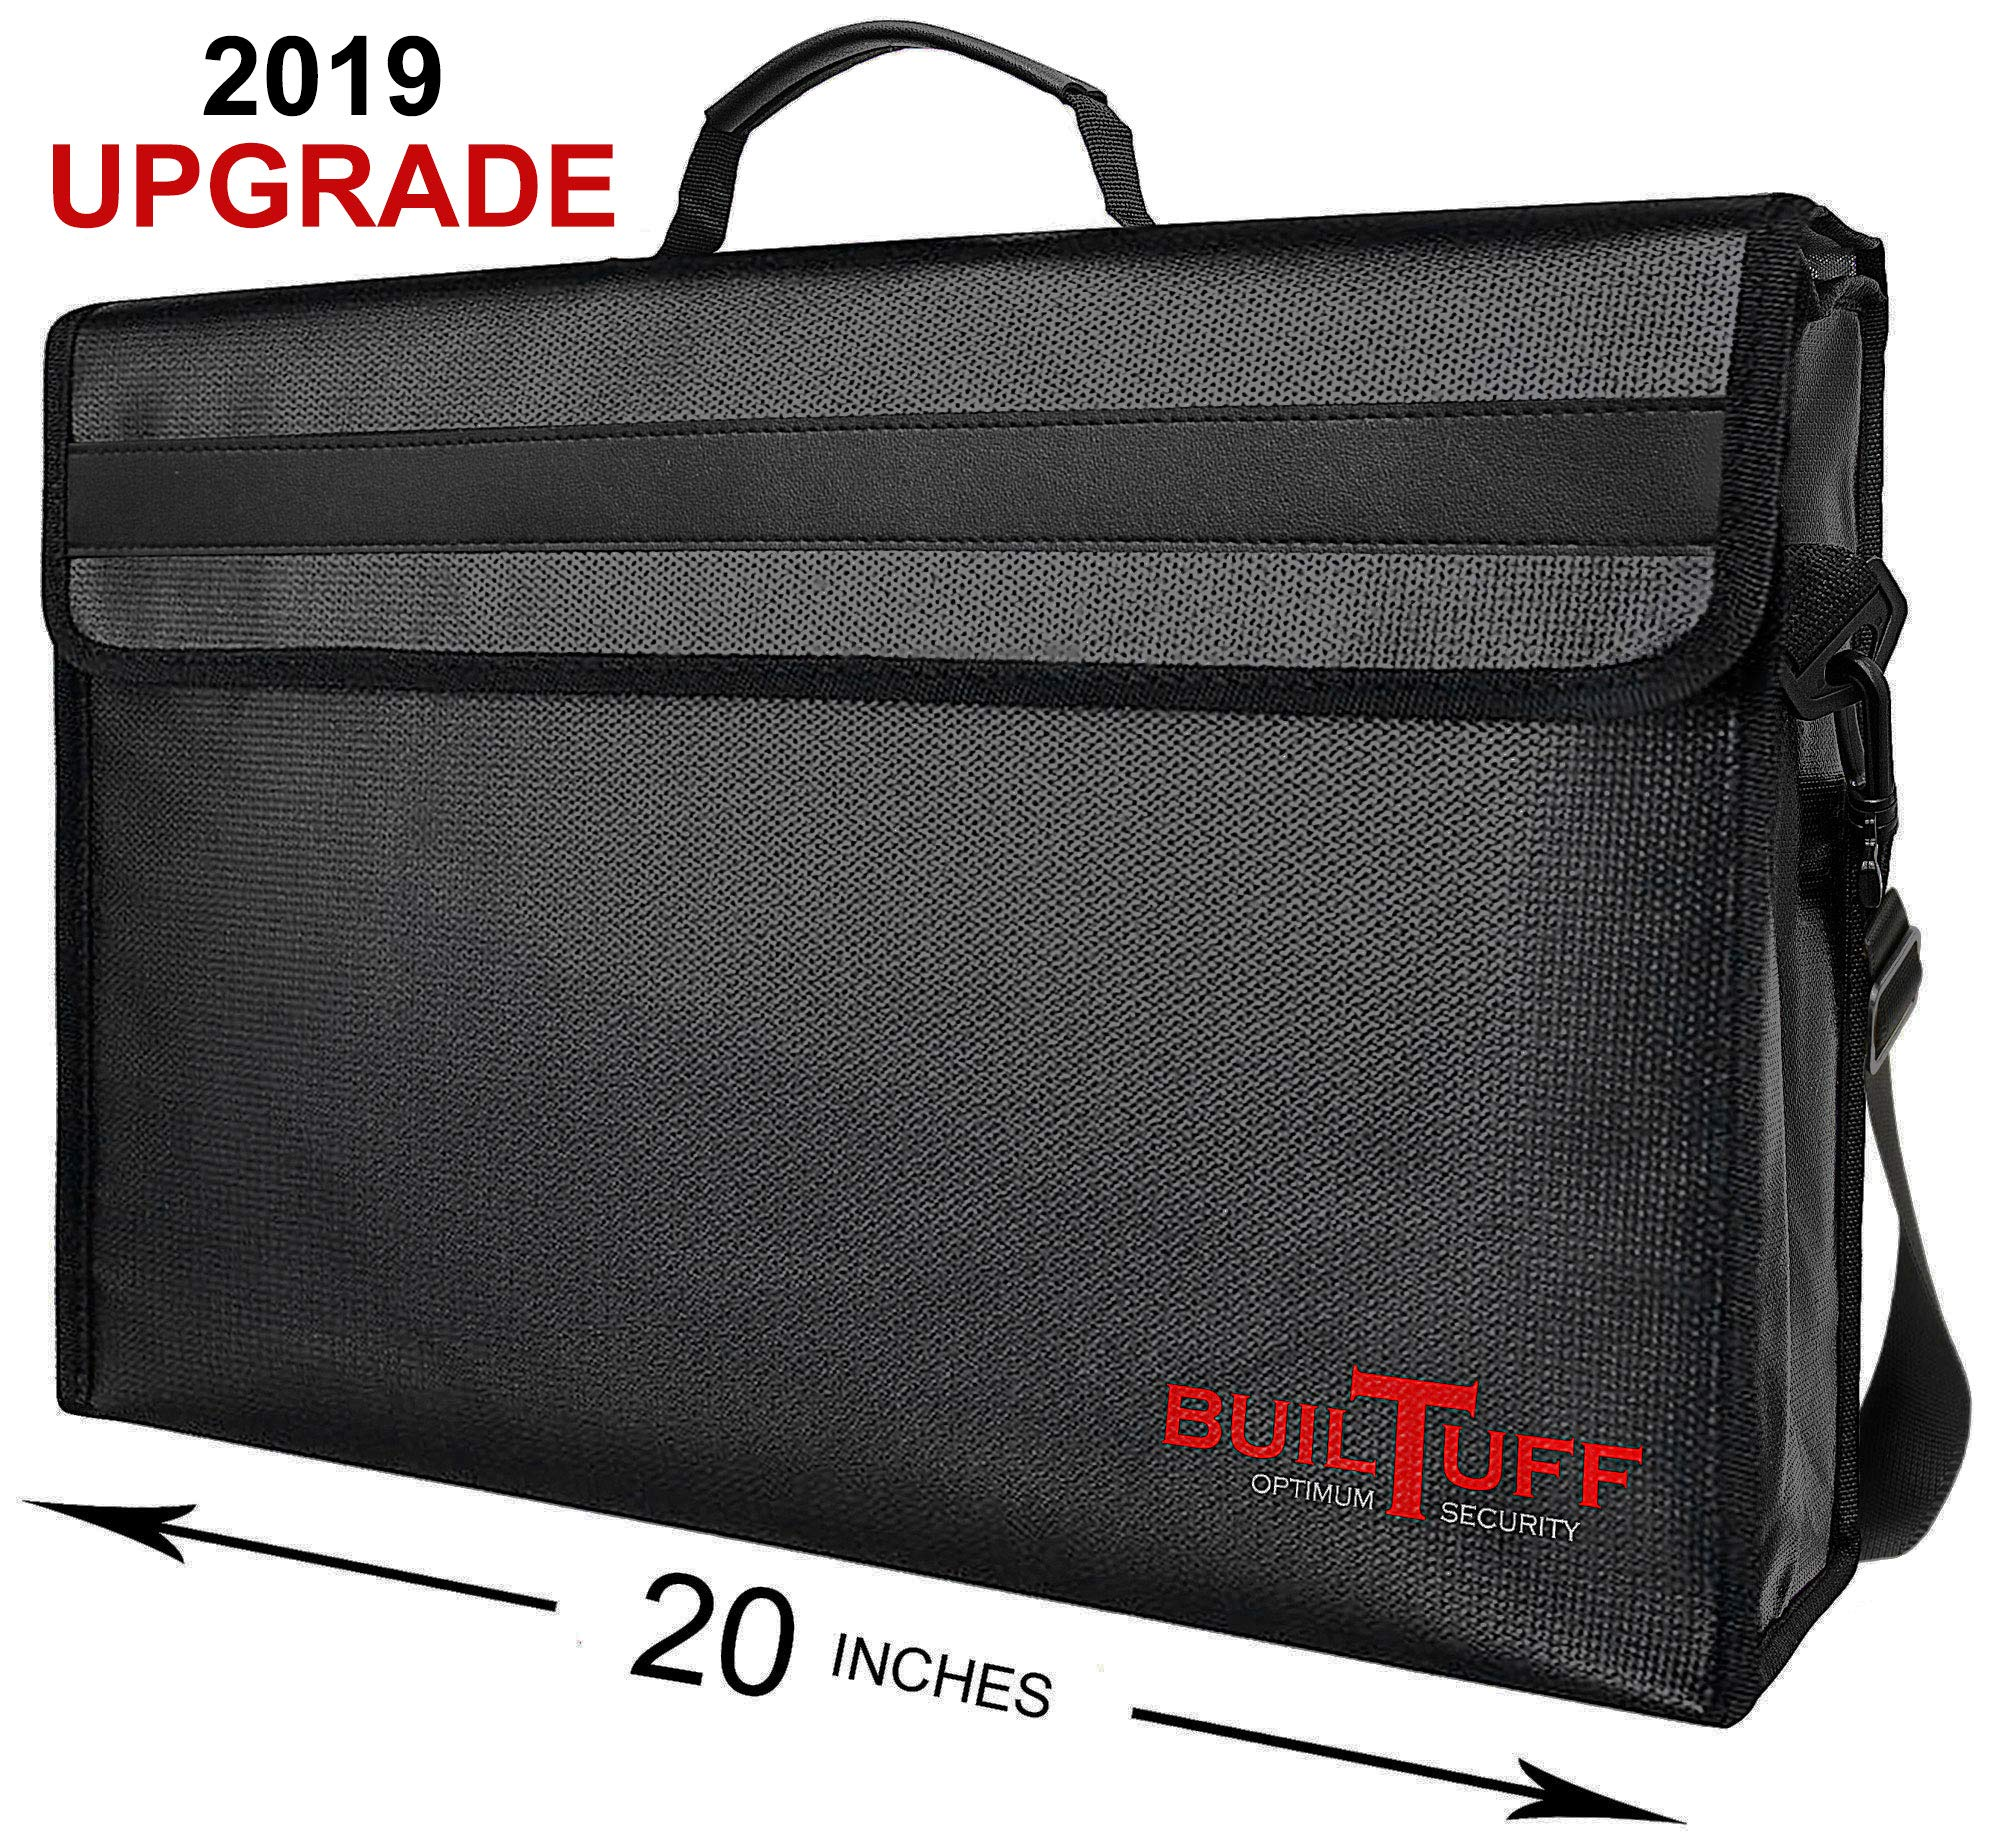 XXXL Fireproof Document Bags 20x13x5 Holds Legal Size Large Files and Documents Without Bending. Fireproof Safe, Water Resistant Document Bag for Passport, Jewelry, Money,Valuables.BuilTuff 20x13x5 by Builtuff